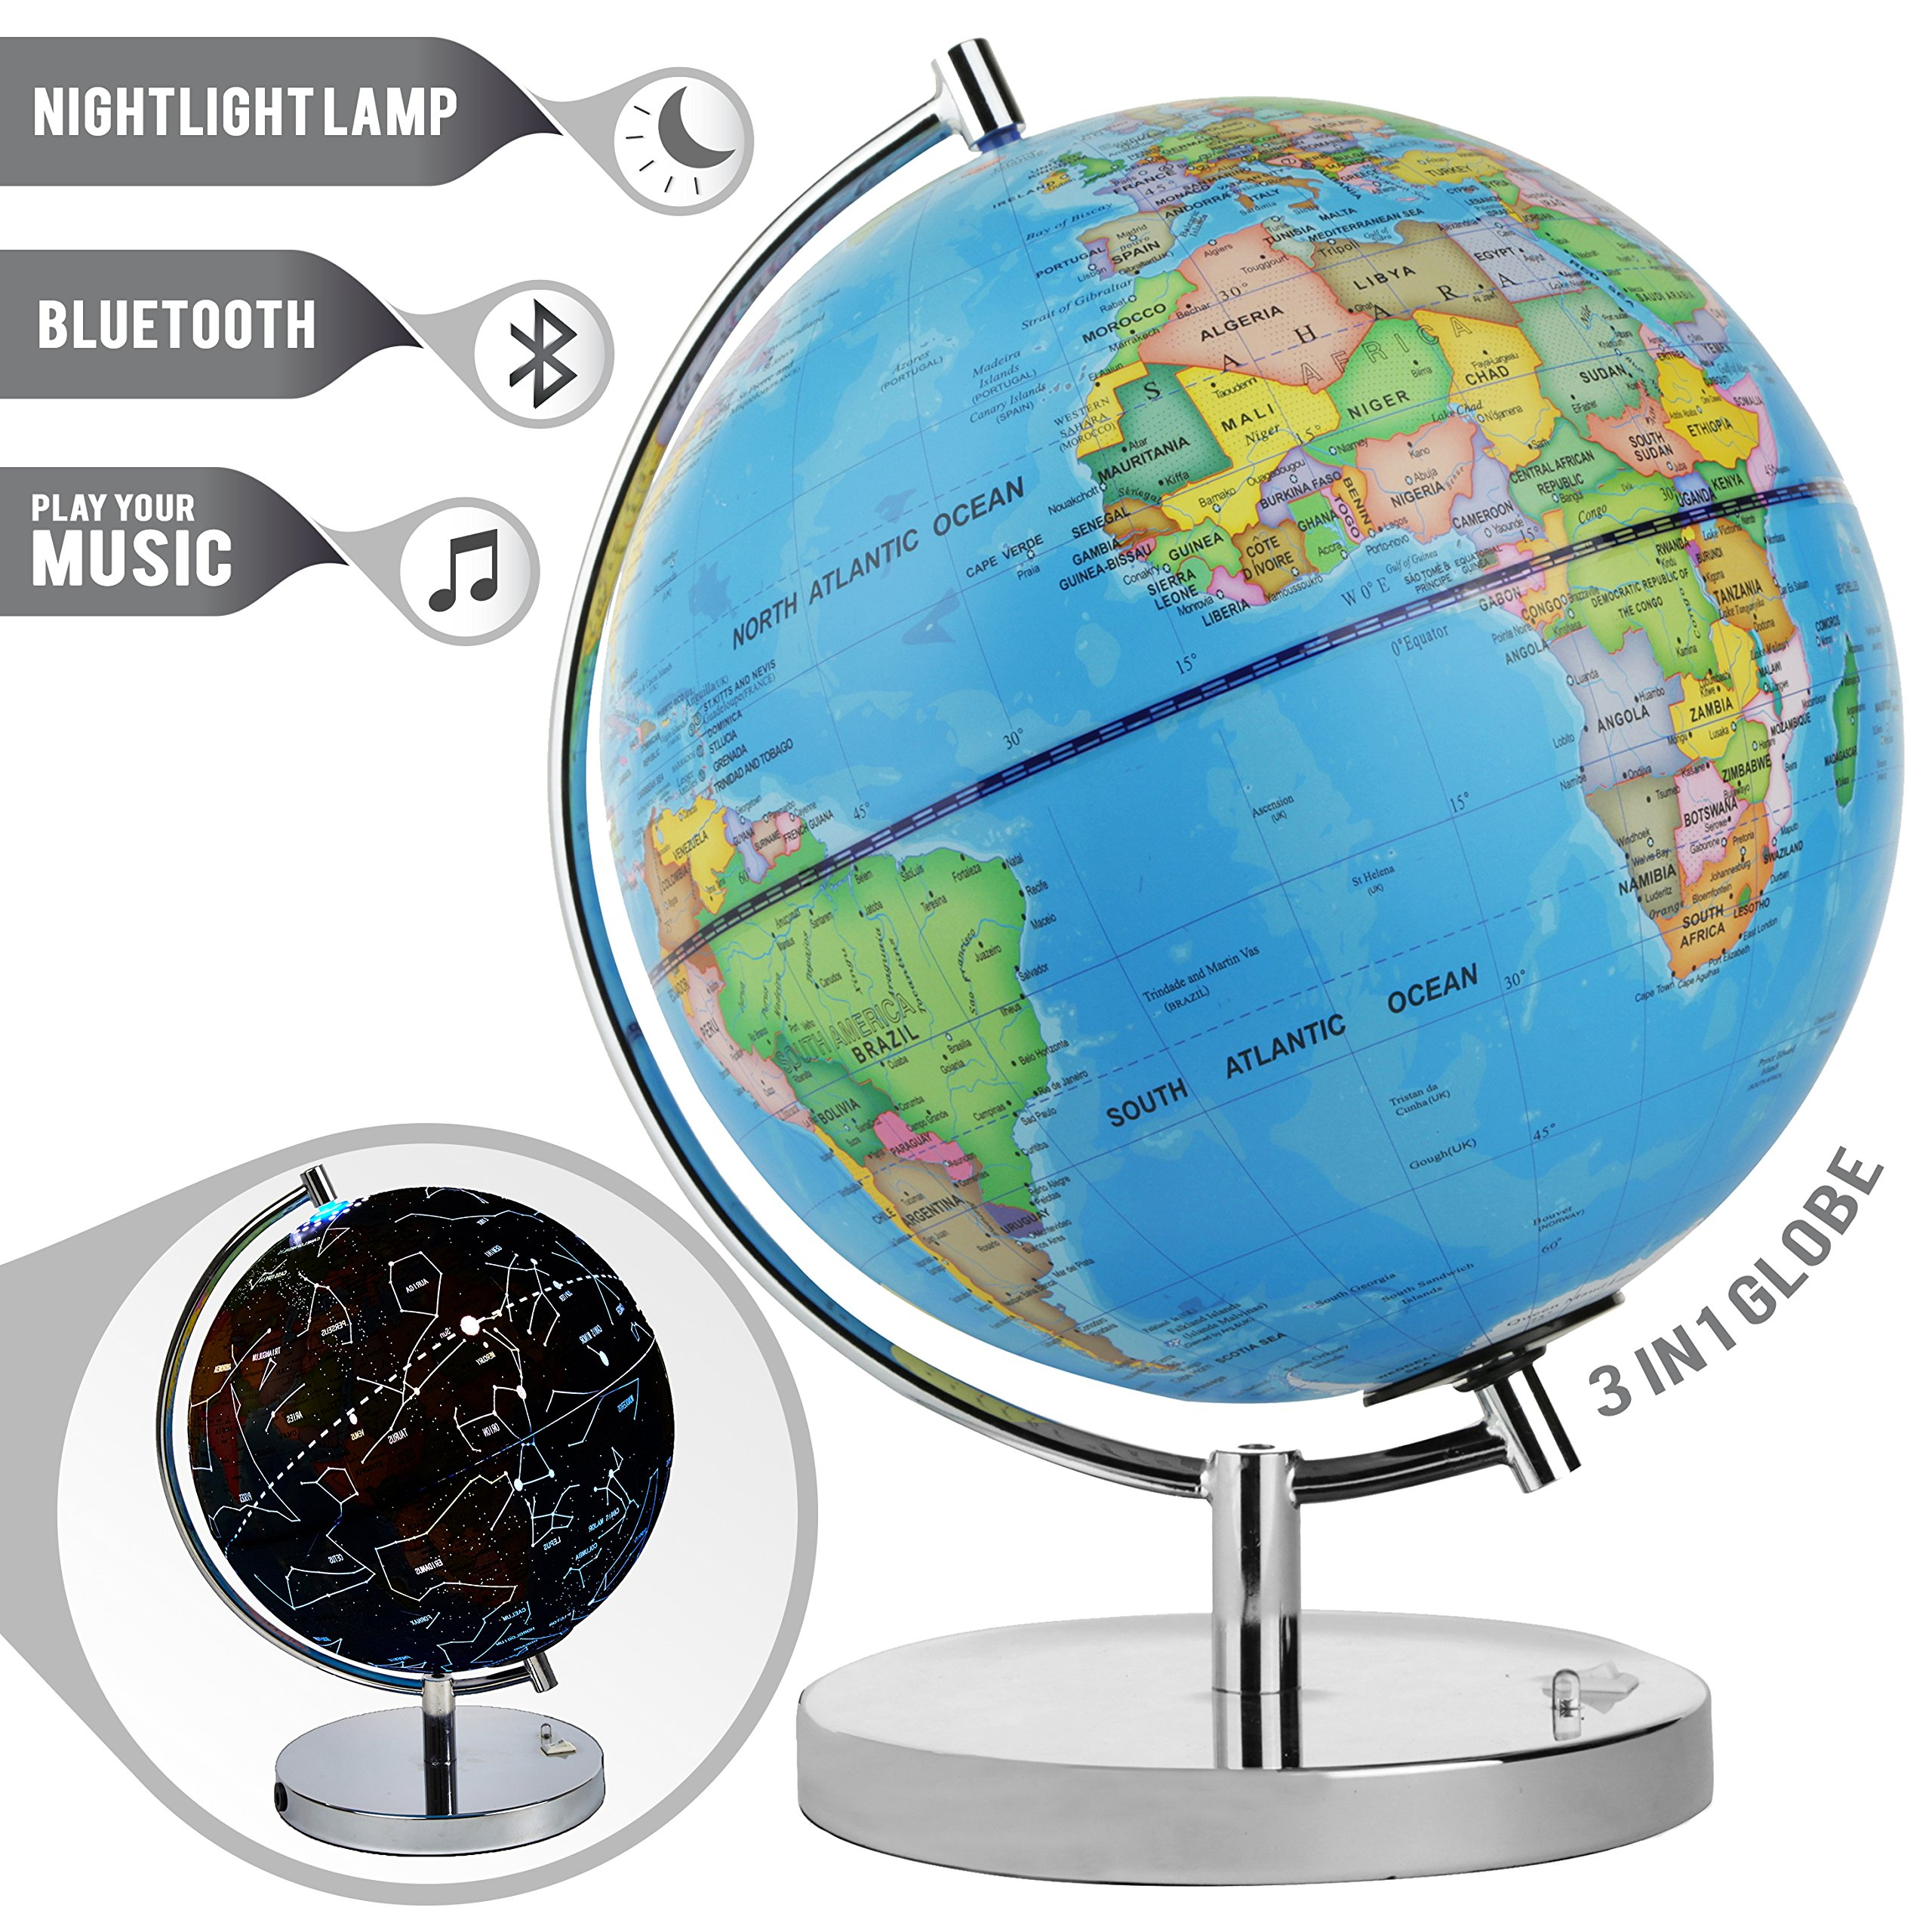 "LED Light up Globe with Bluetooth Speaker, Chrome Base and Detailed World Map - Constellations Glow at Night – Projects Star Lights on Ceiling as Nightlight - 12.5 x 9"" - by ToyThrill"